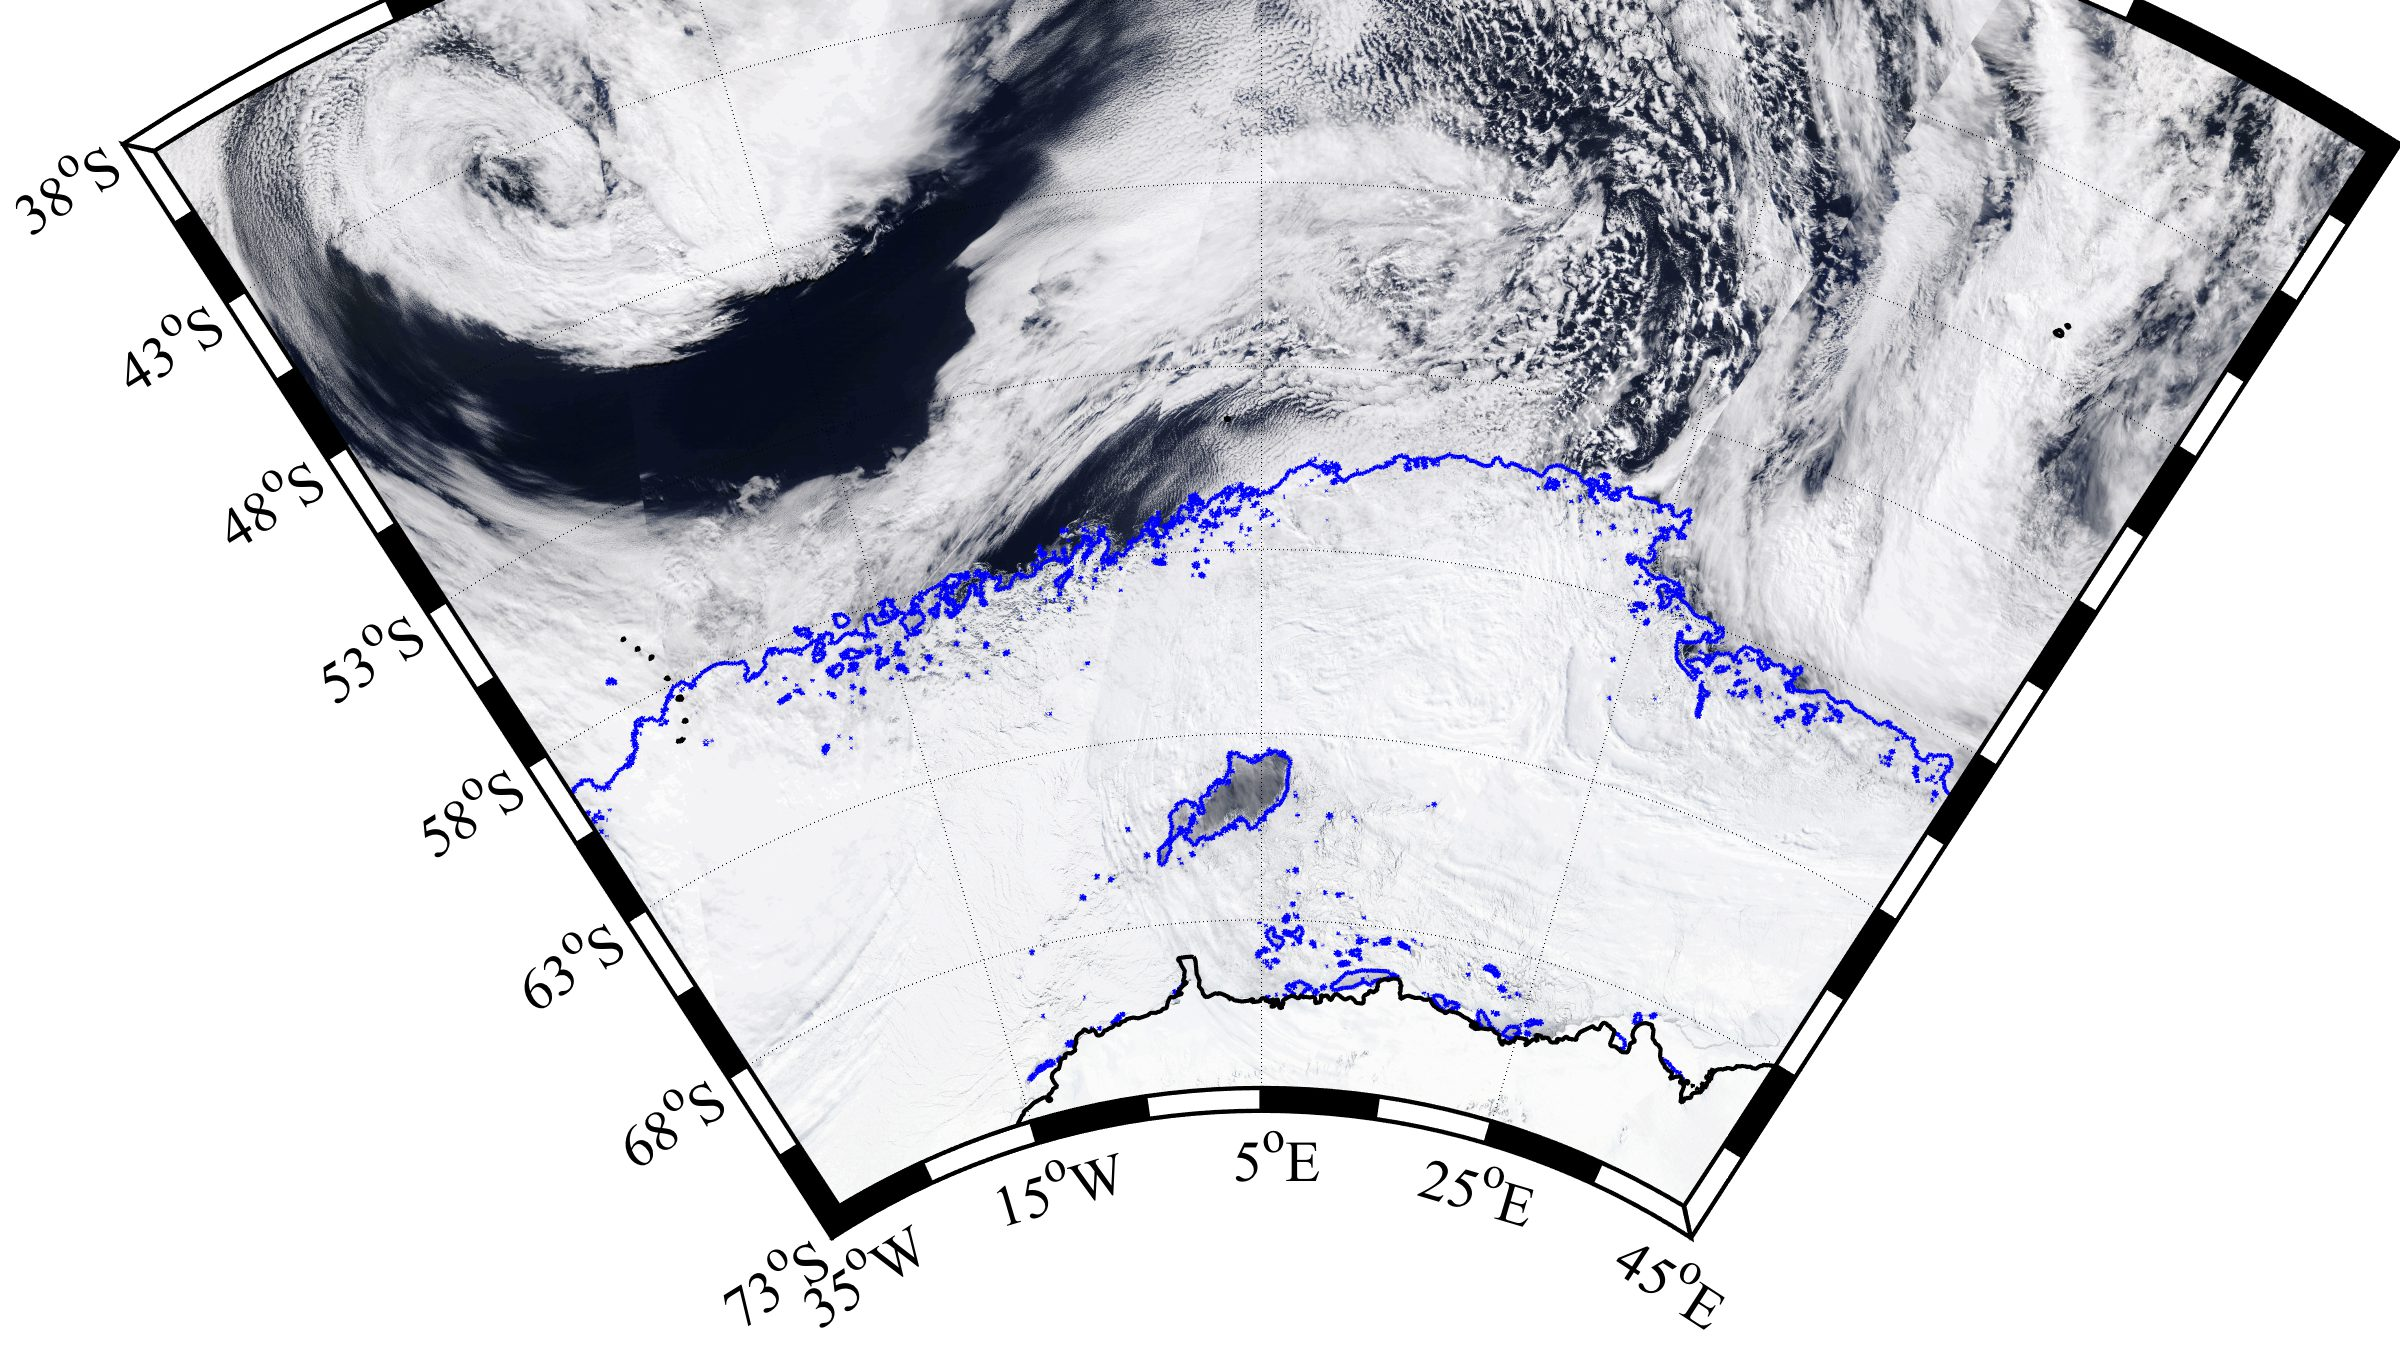 Winter sea ice blankets the Weddell Sea around Antarctica in this satellite image from September 25, 2017. The blue curves represent the ice edge. The polynya is the dark region of open water within the ice pack.